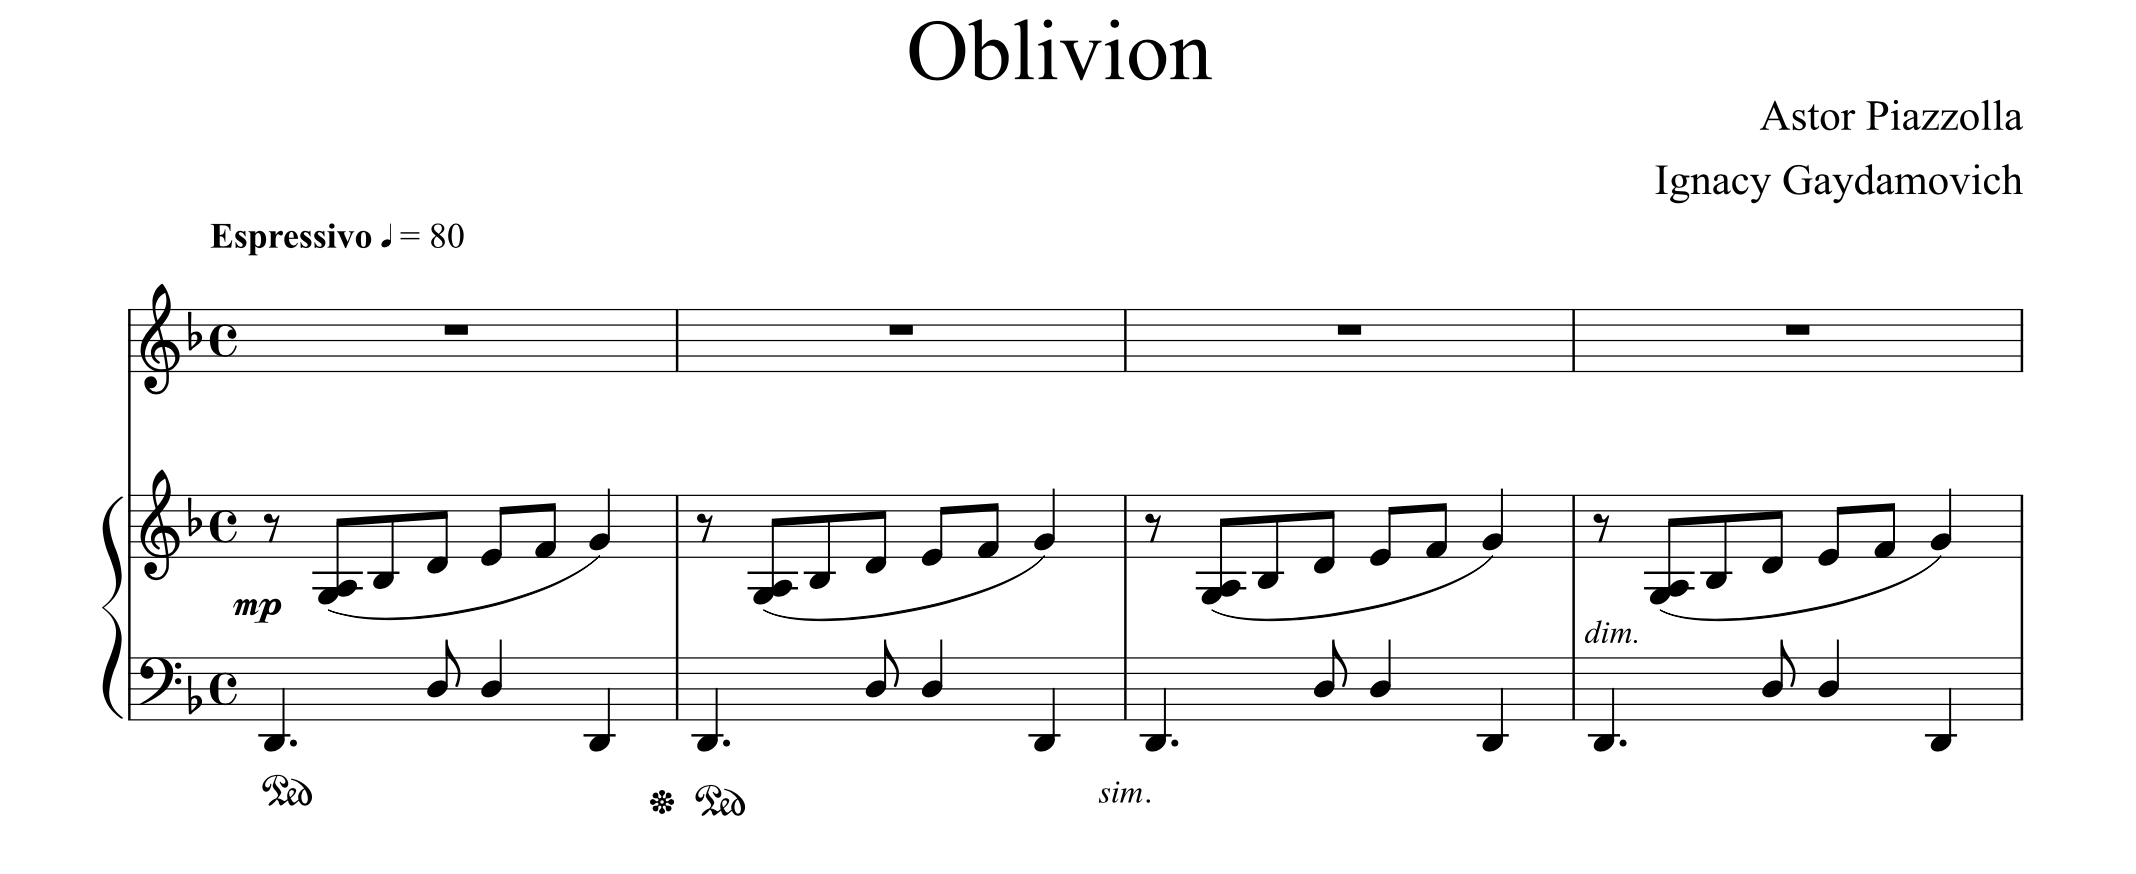 Astor Piazzolla - Oblivion for Double Bass and Piano - PDF — Ignacy  Gaydamovich